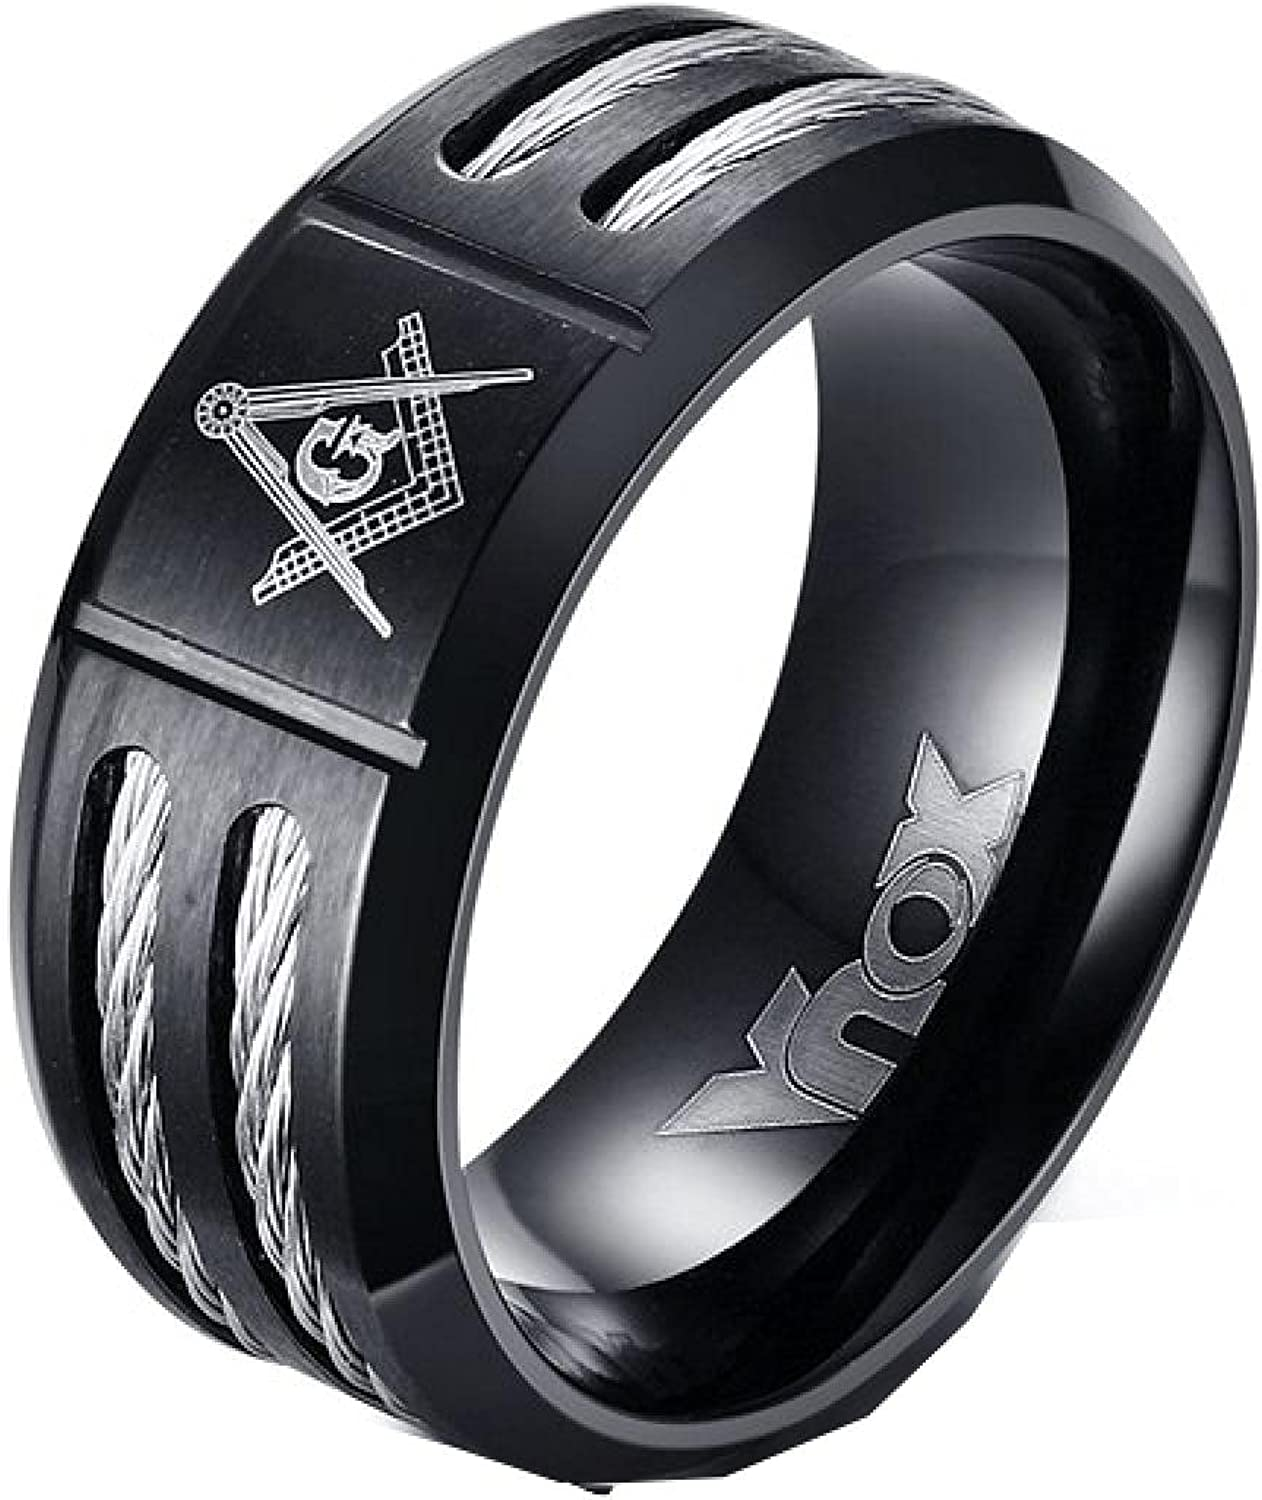 Mens Black Rings Stainless Steel Double fo Super special price Cable Wire Oakland Mall Ring Inlay